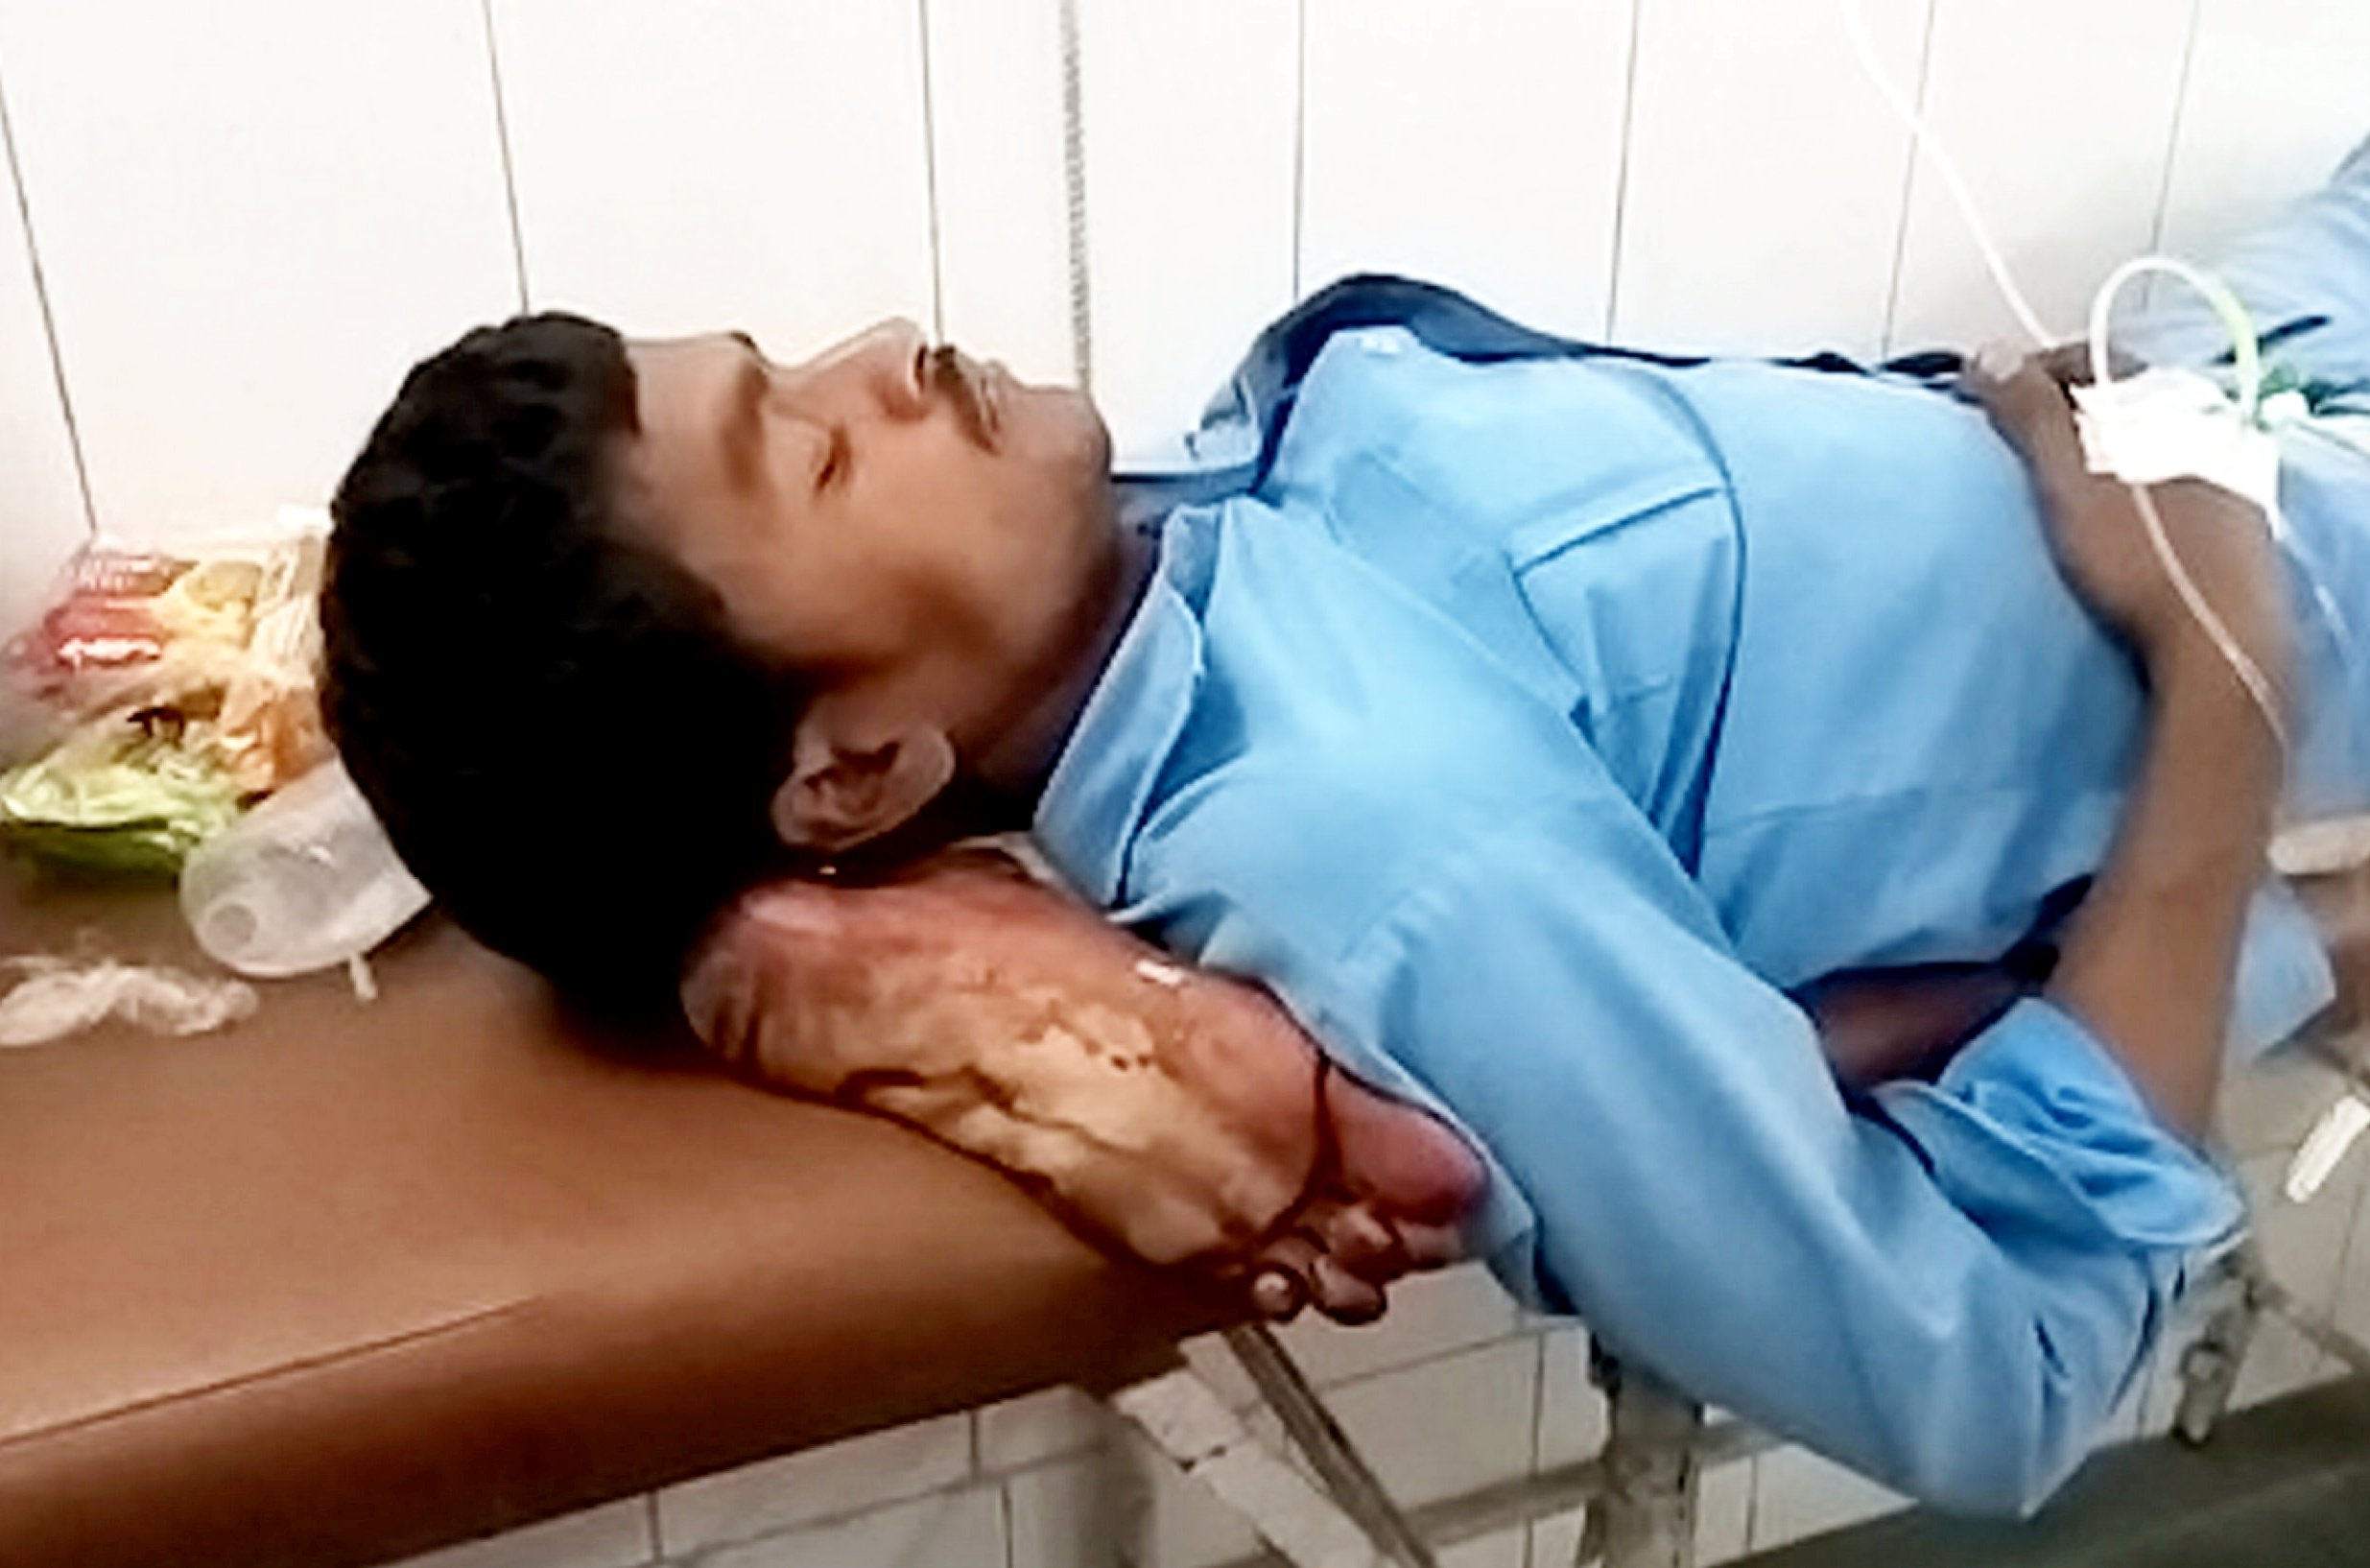 This shocking video shows a man using his own left FOOT as a PILLOW - after doctors amputated it when he was involved in a bus crash. See SWNS story SWFOOT. The 25-year-old works as a helper on a school bus which overturned while trying to avoid colliding with a tractor yesterday (Sat). Twenty-five schoolchildren were also injured in the accident in Ghanshyam, India, reports said. He was then taken to Jhansi Medical College, 34 miles from the accident site, where doctors amputated his leg and placed it under his head as a pillow, his relatives allege.